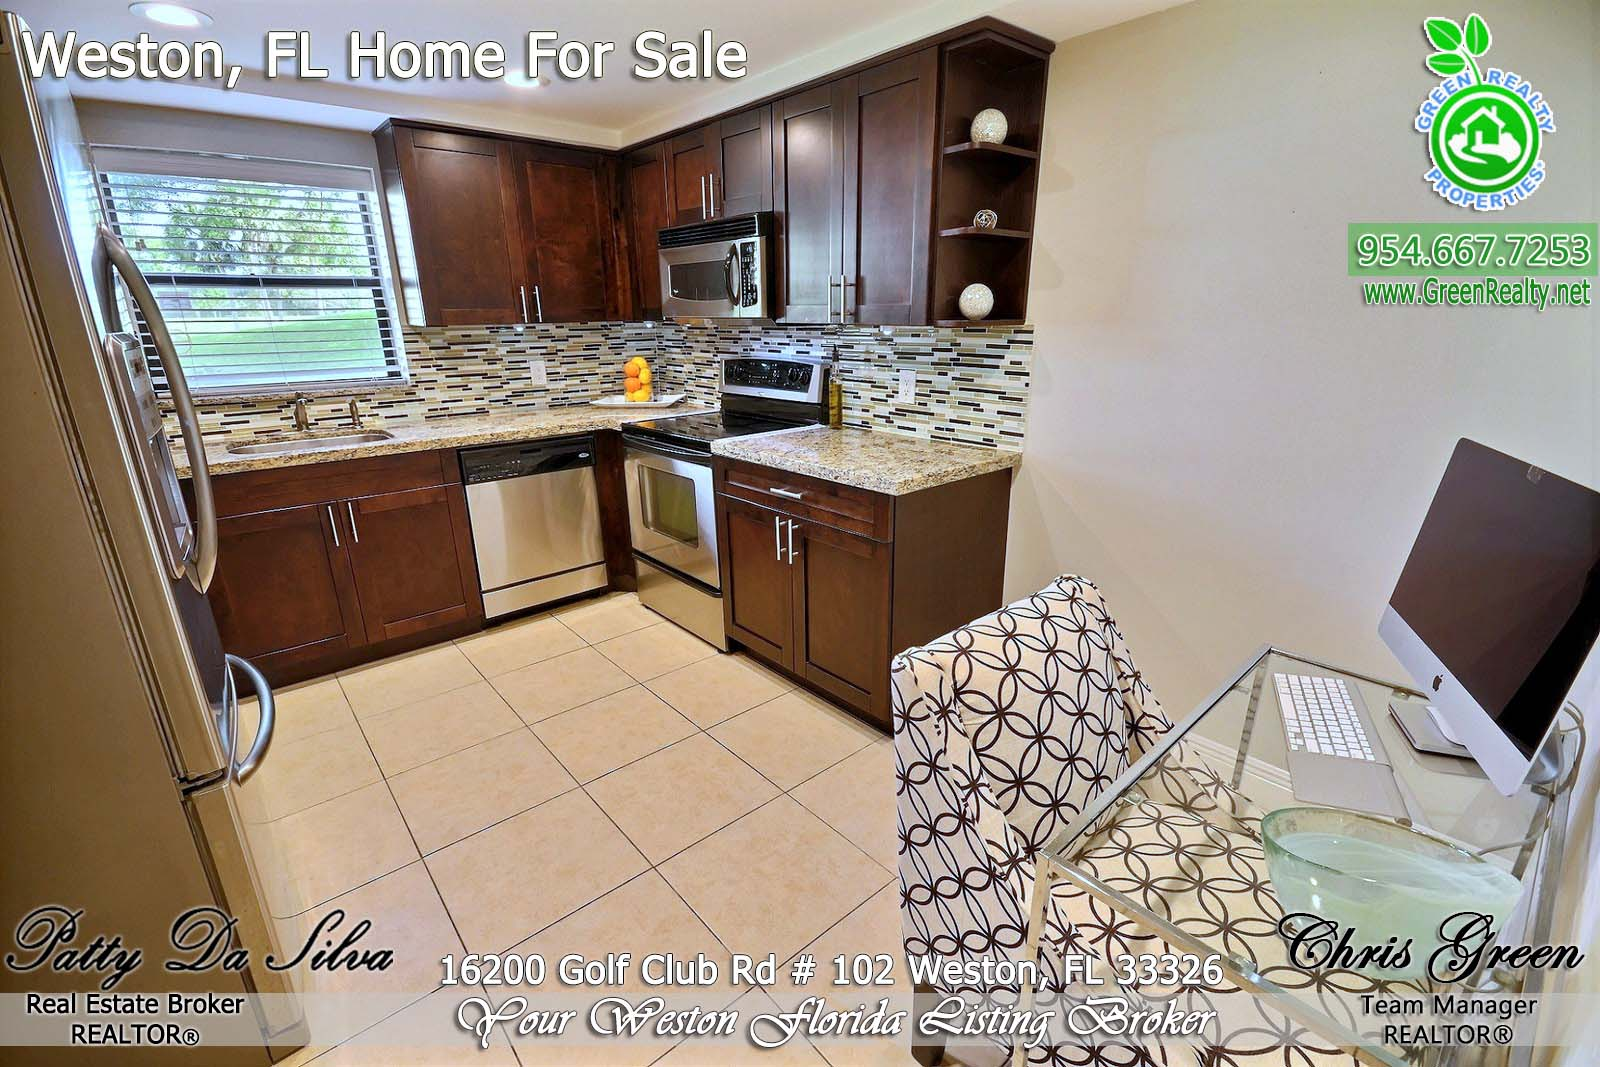 11 16200 Golf Club Rd, Unit 102, Weston FL 33326 (11)